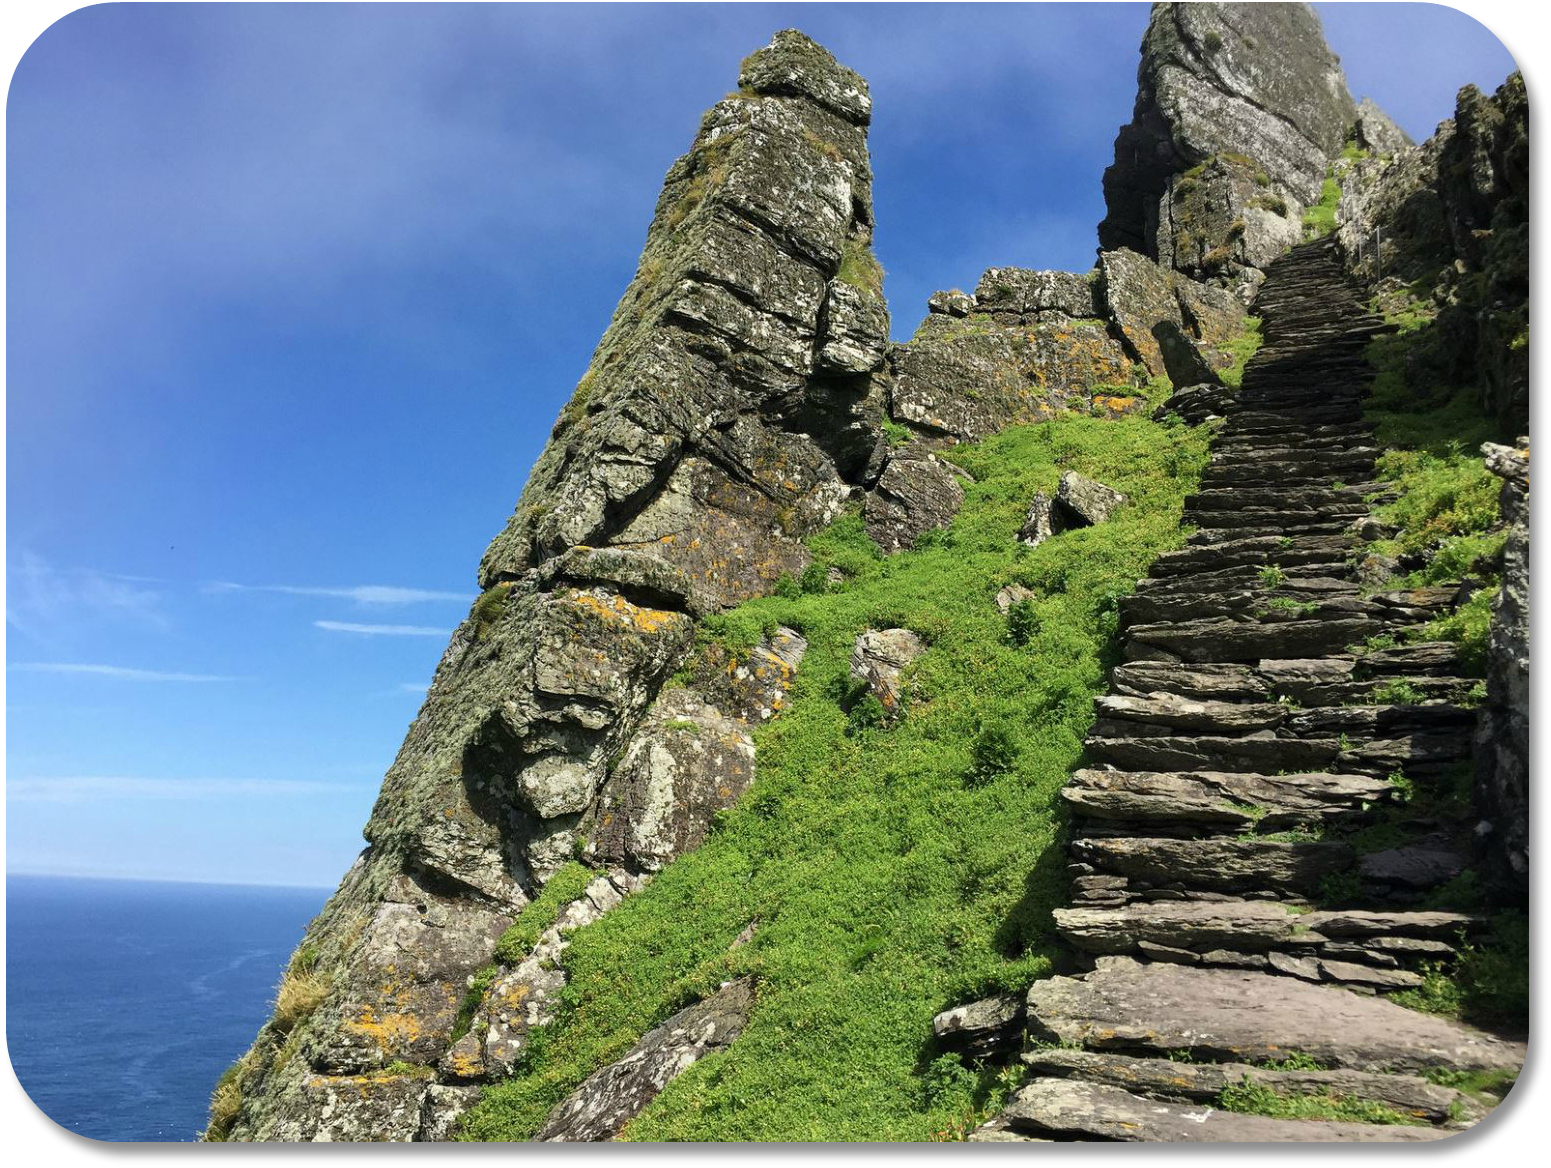 Irish Expressions - Skellig Michael photocredit Jacob Mells via Flickr